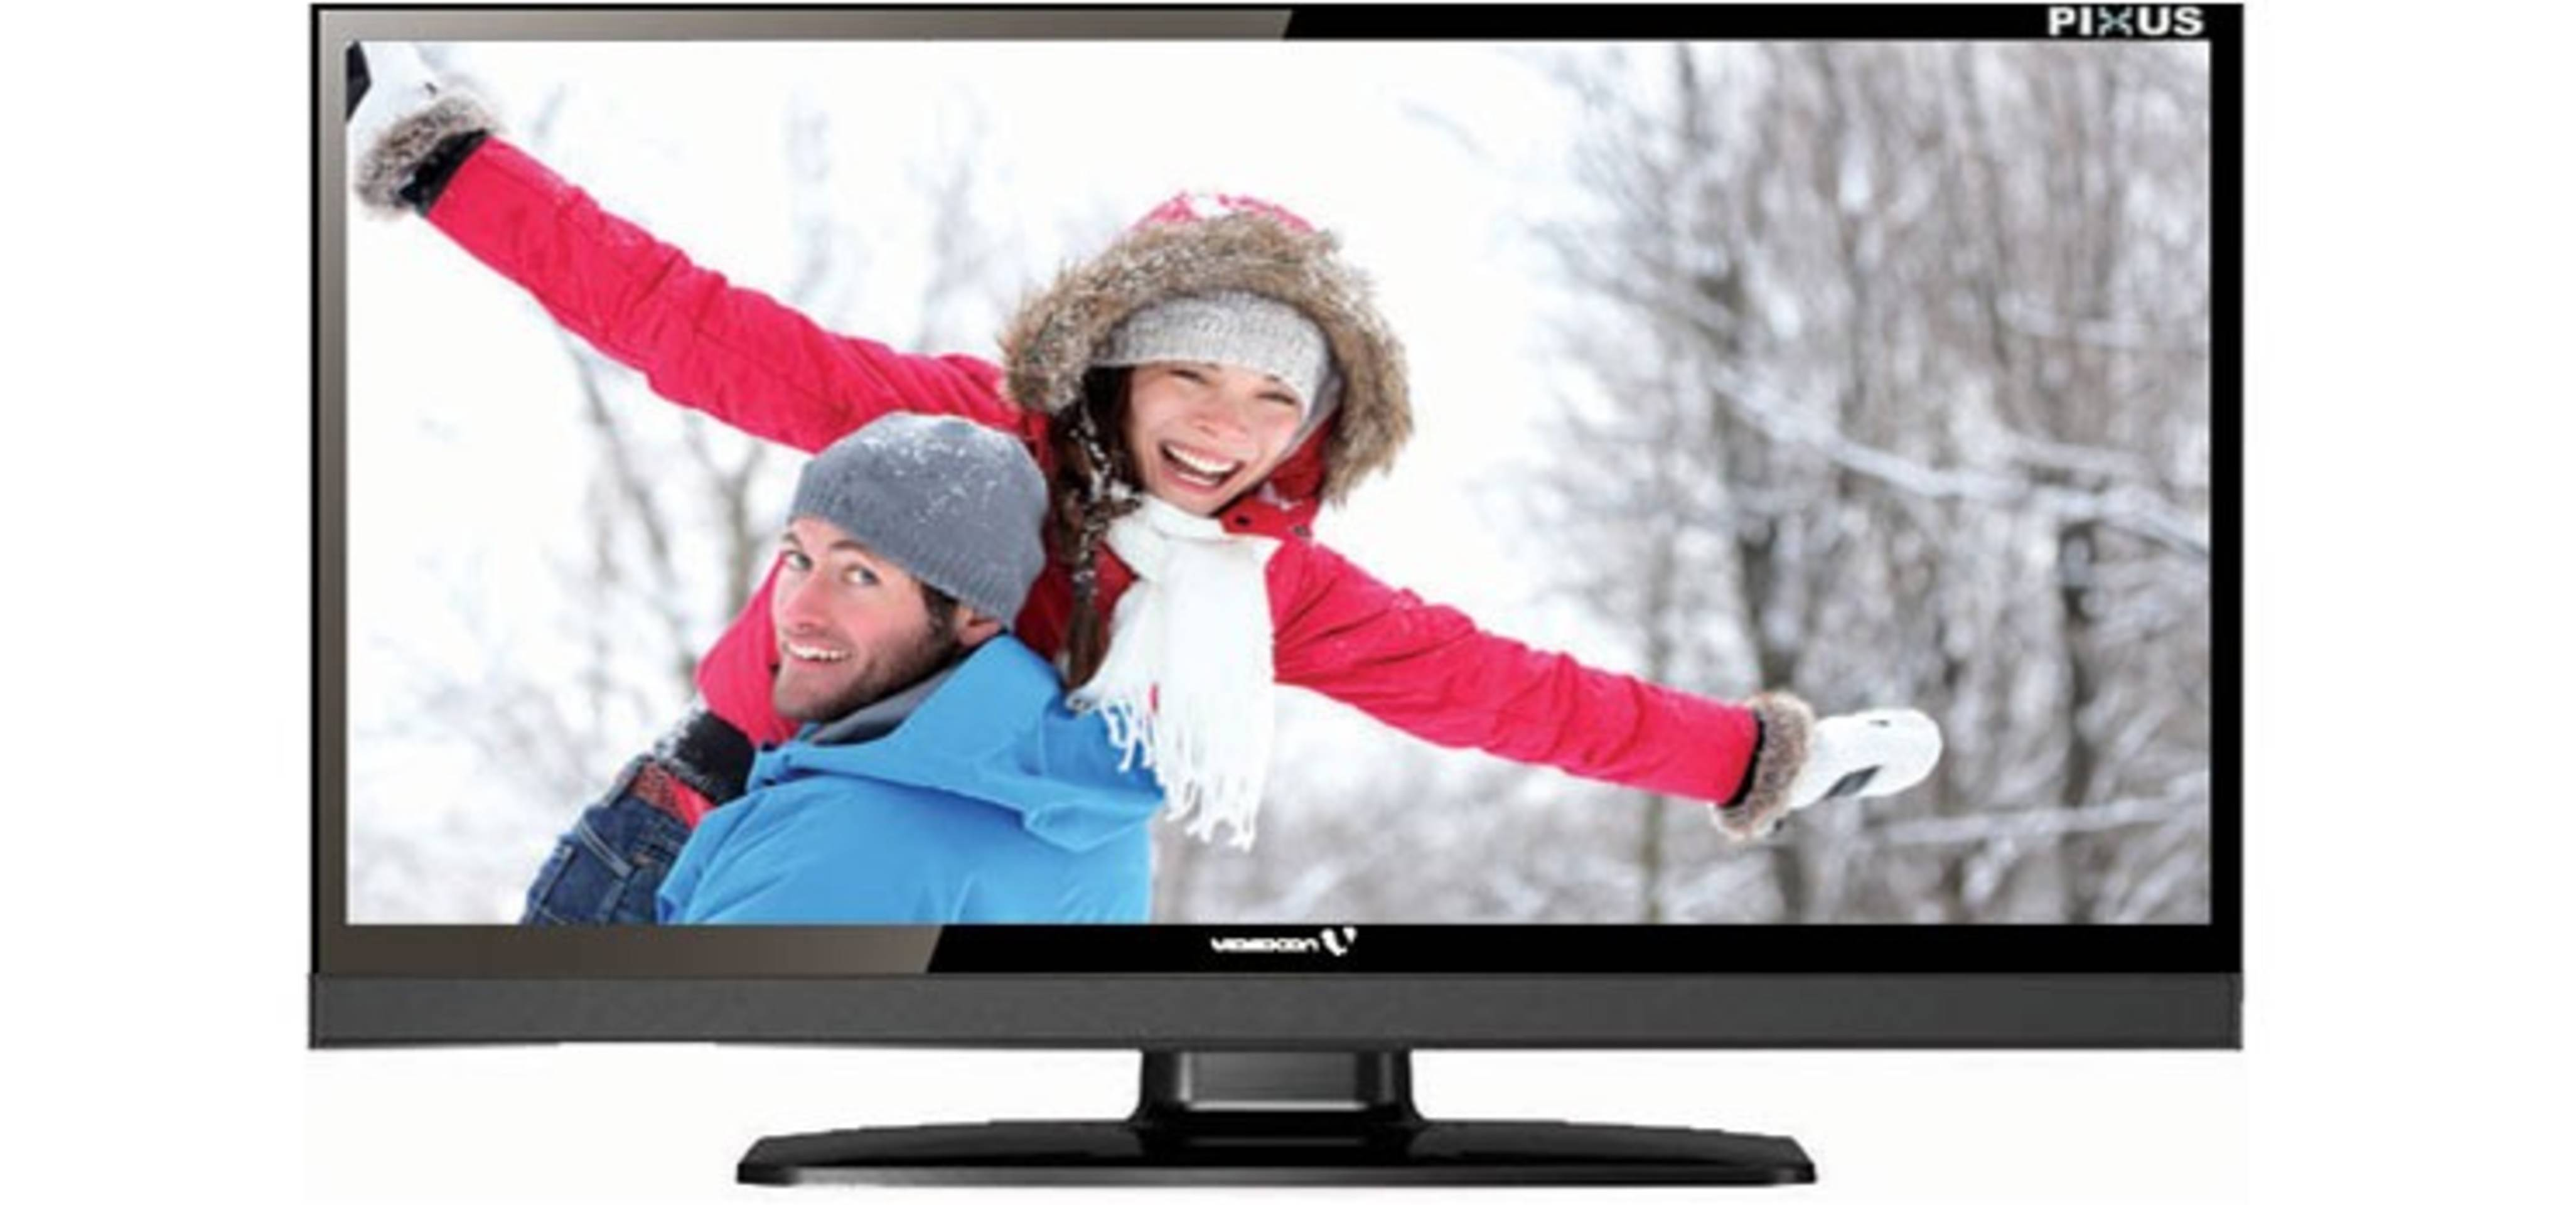 Videocon Lcd Led Oled Televisions Price List Comparison Online